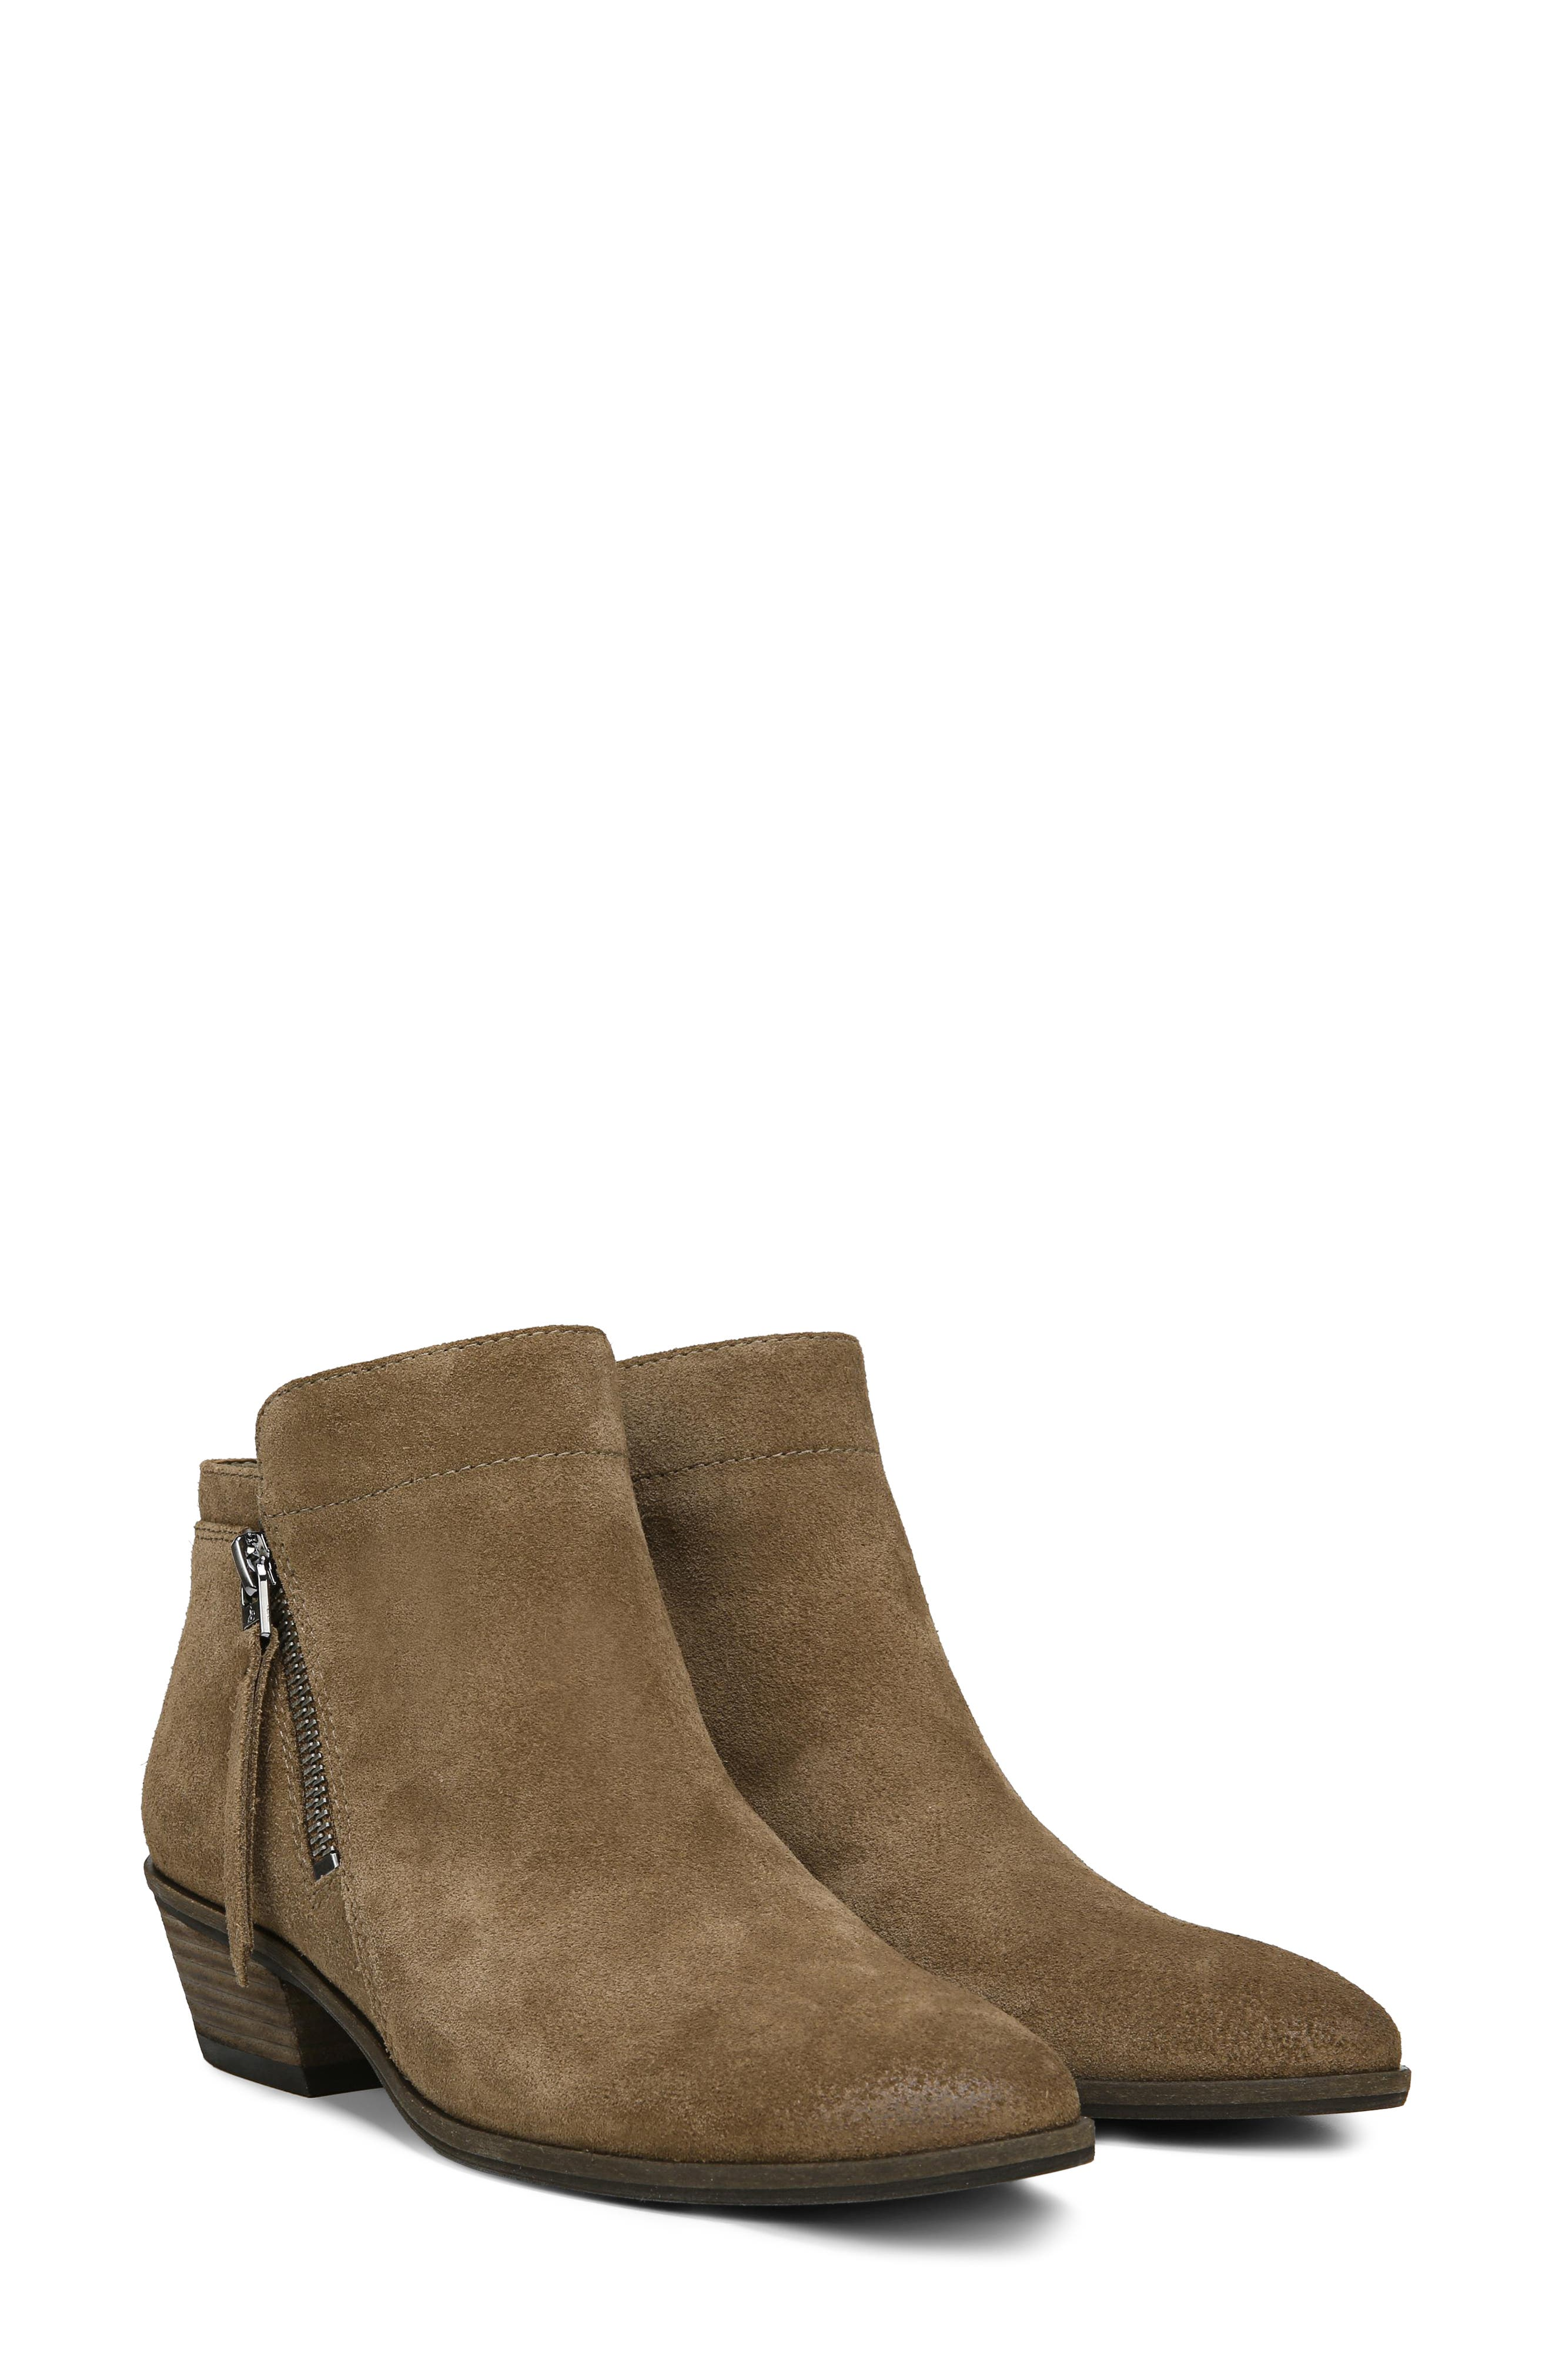 Packer Bootie,                             Alternate thumbnail 7, color,                             DARK TAUPE SUEDE LEATHER